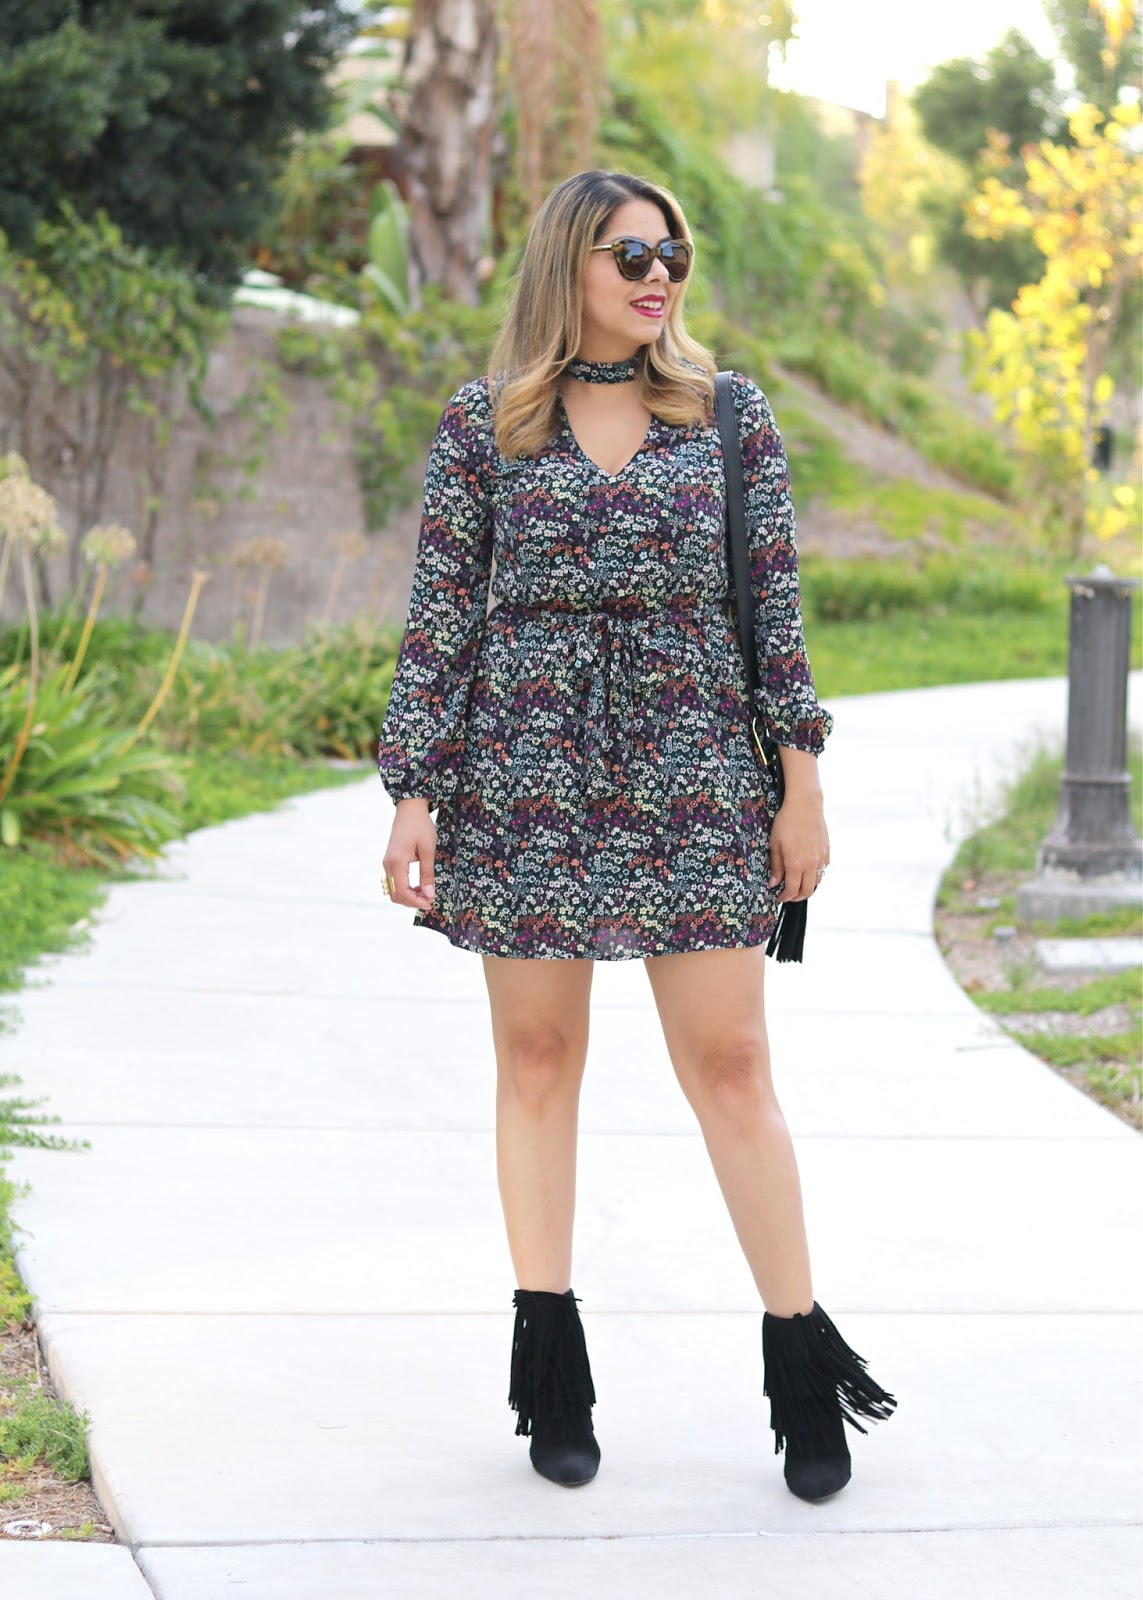 Latina fashion blogger, latina style blogger, what to wear to a fall outing